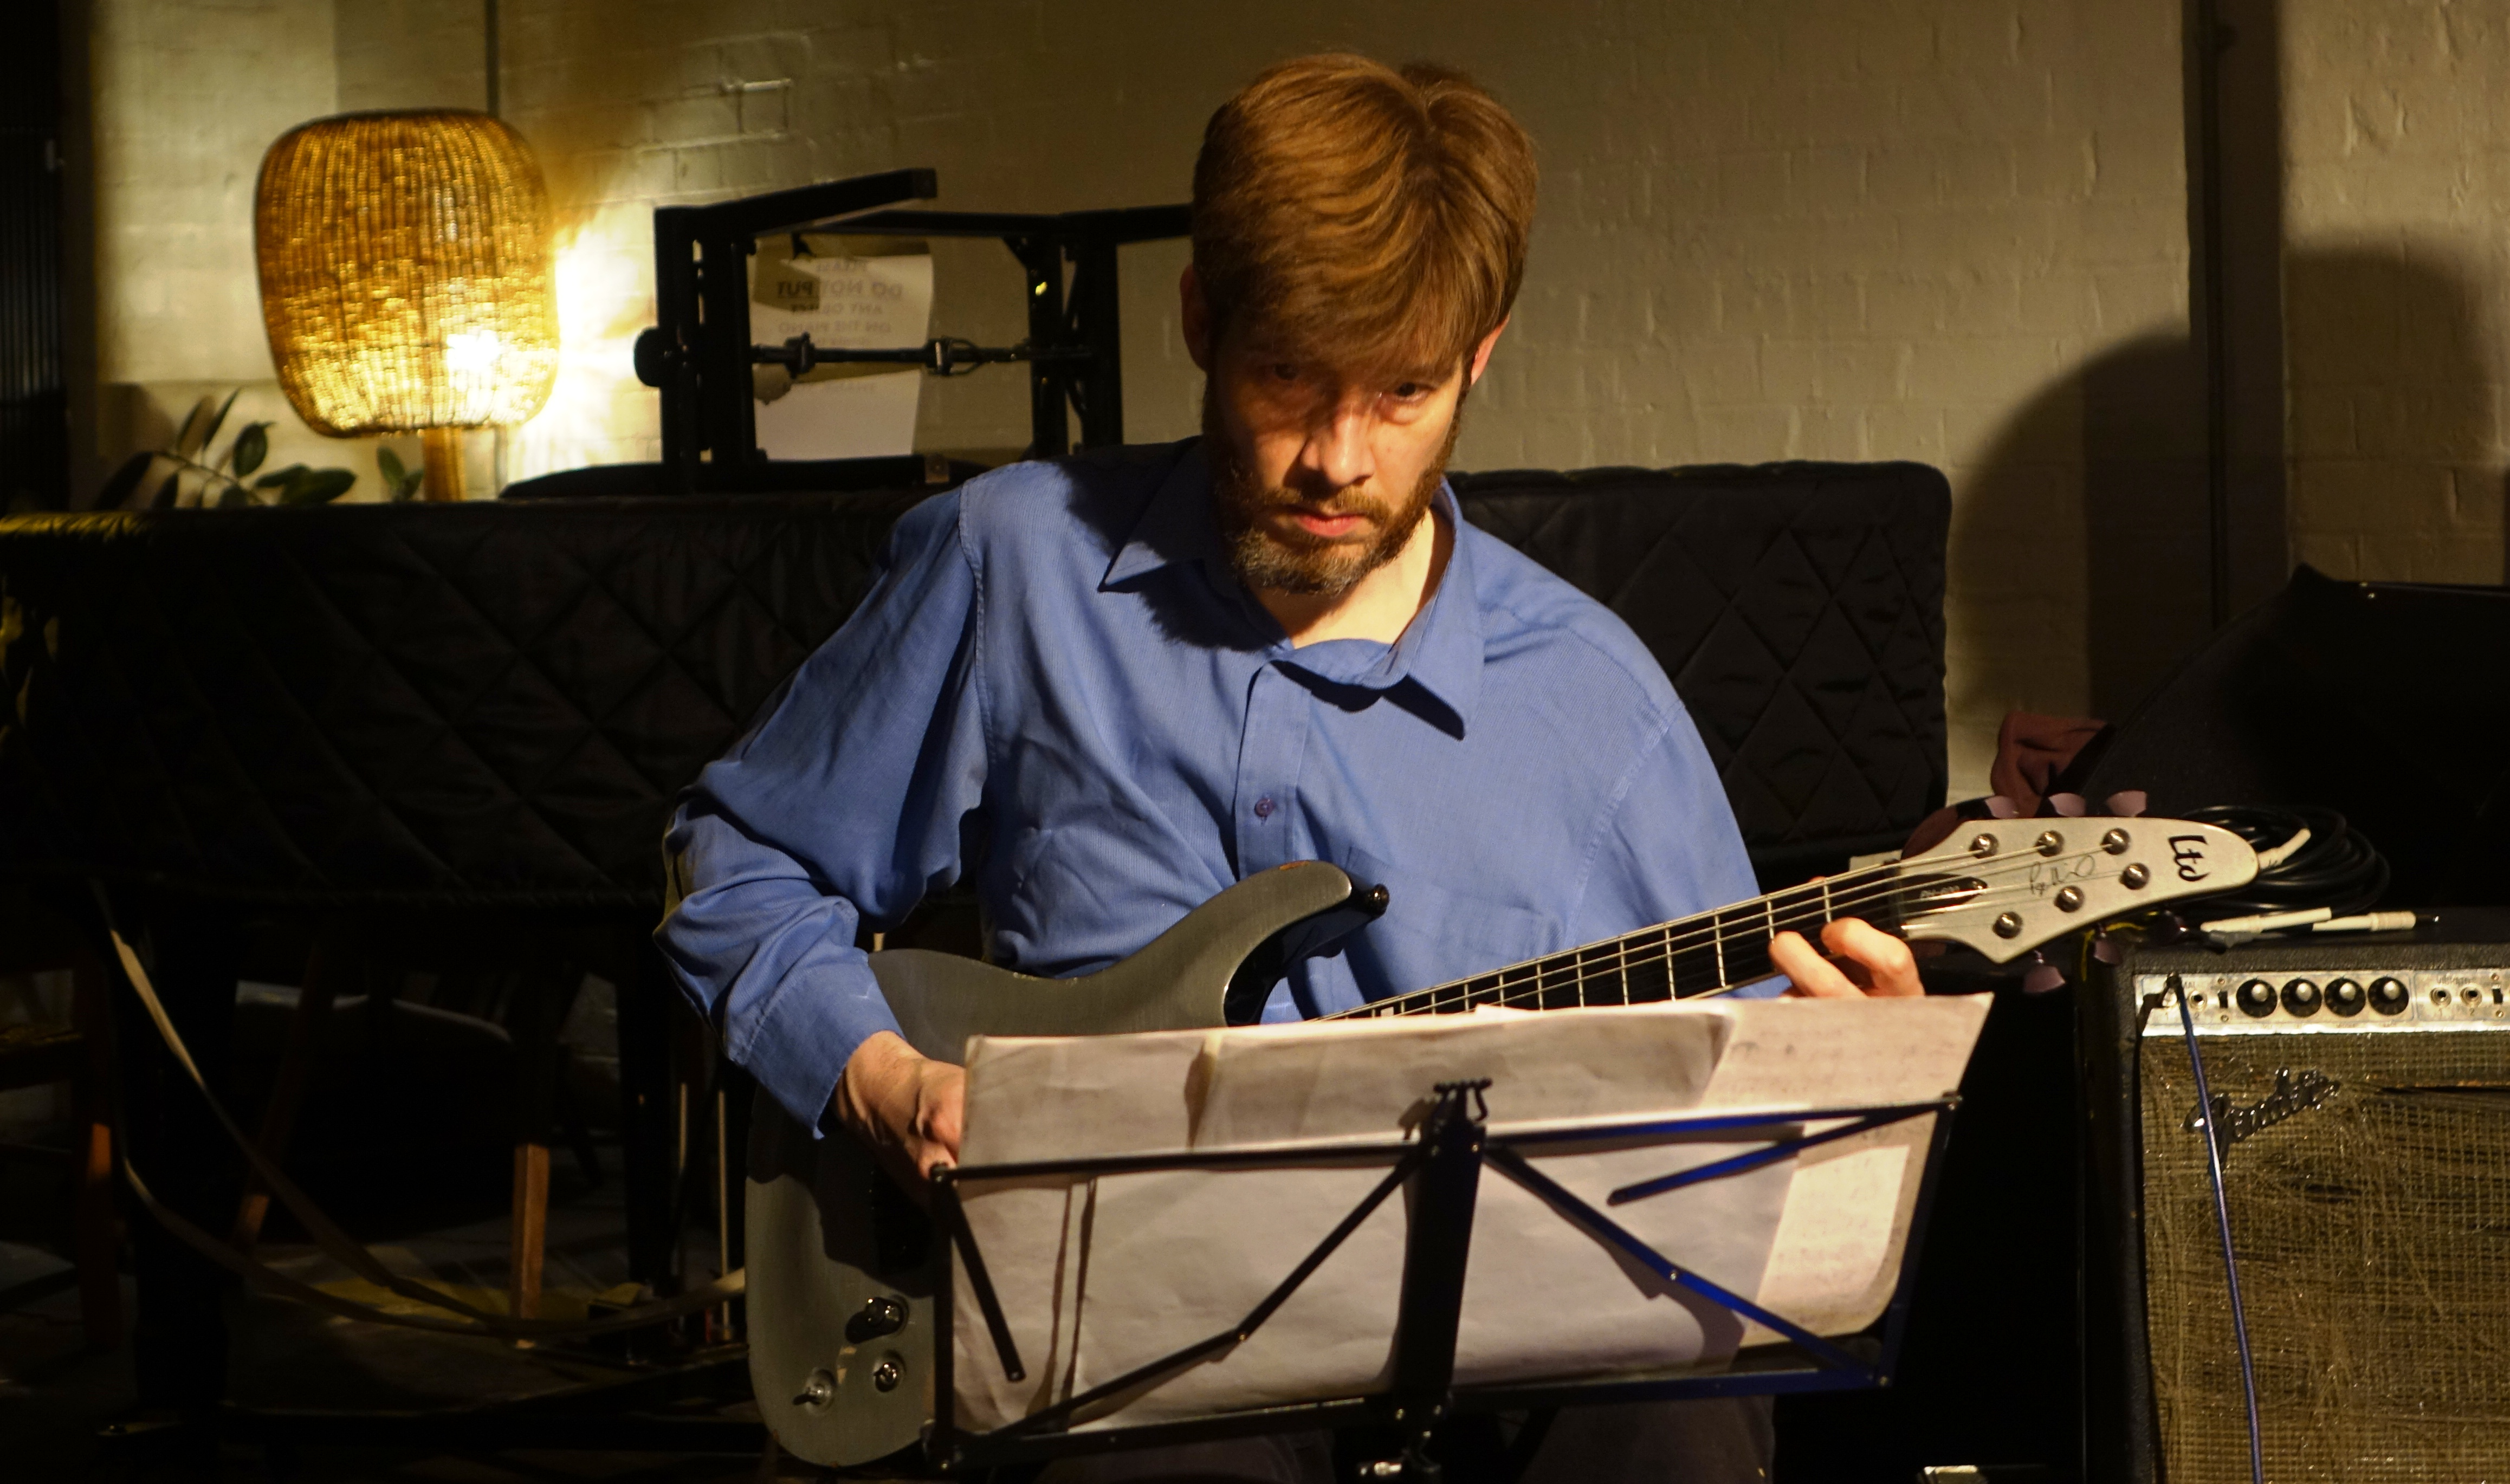 Alex Ward at Cafe Oto, London in January 2019